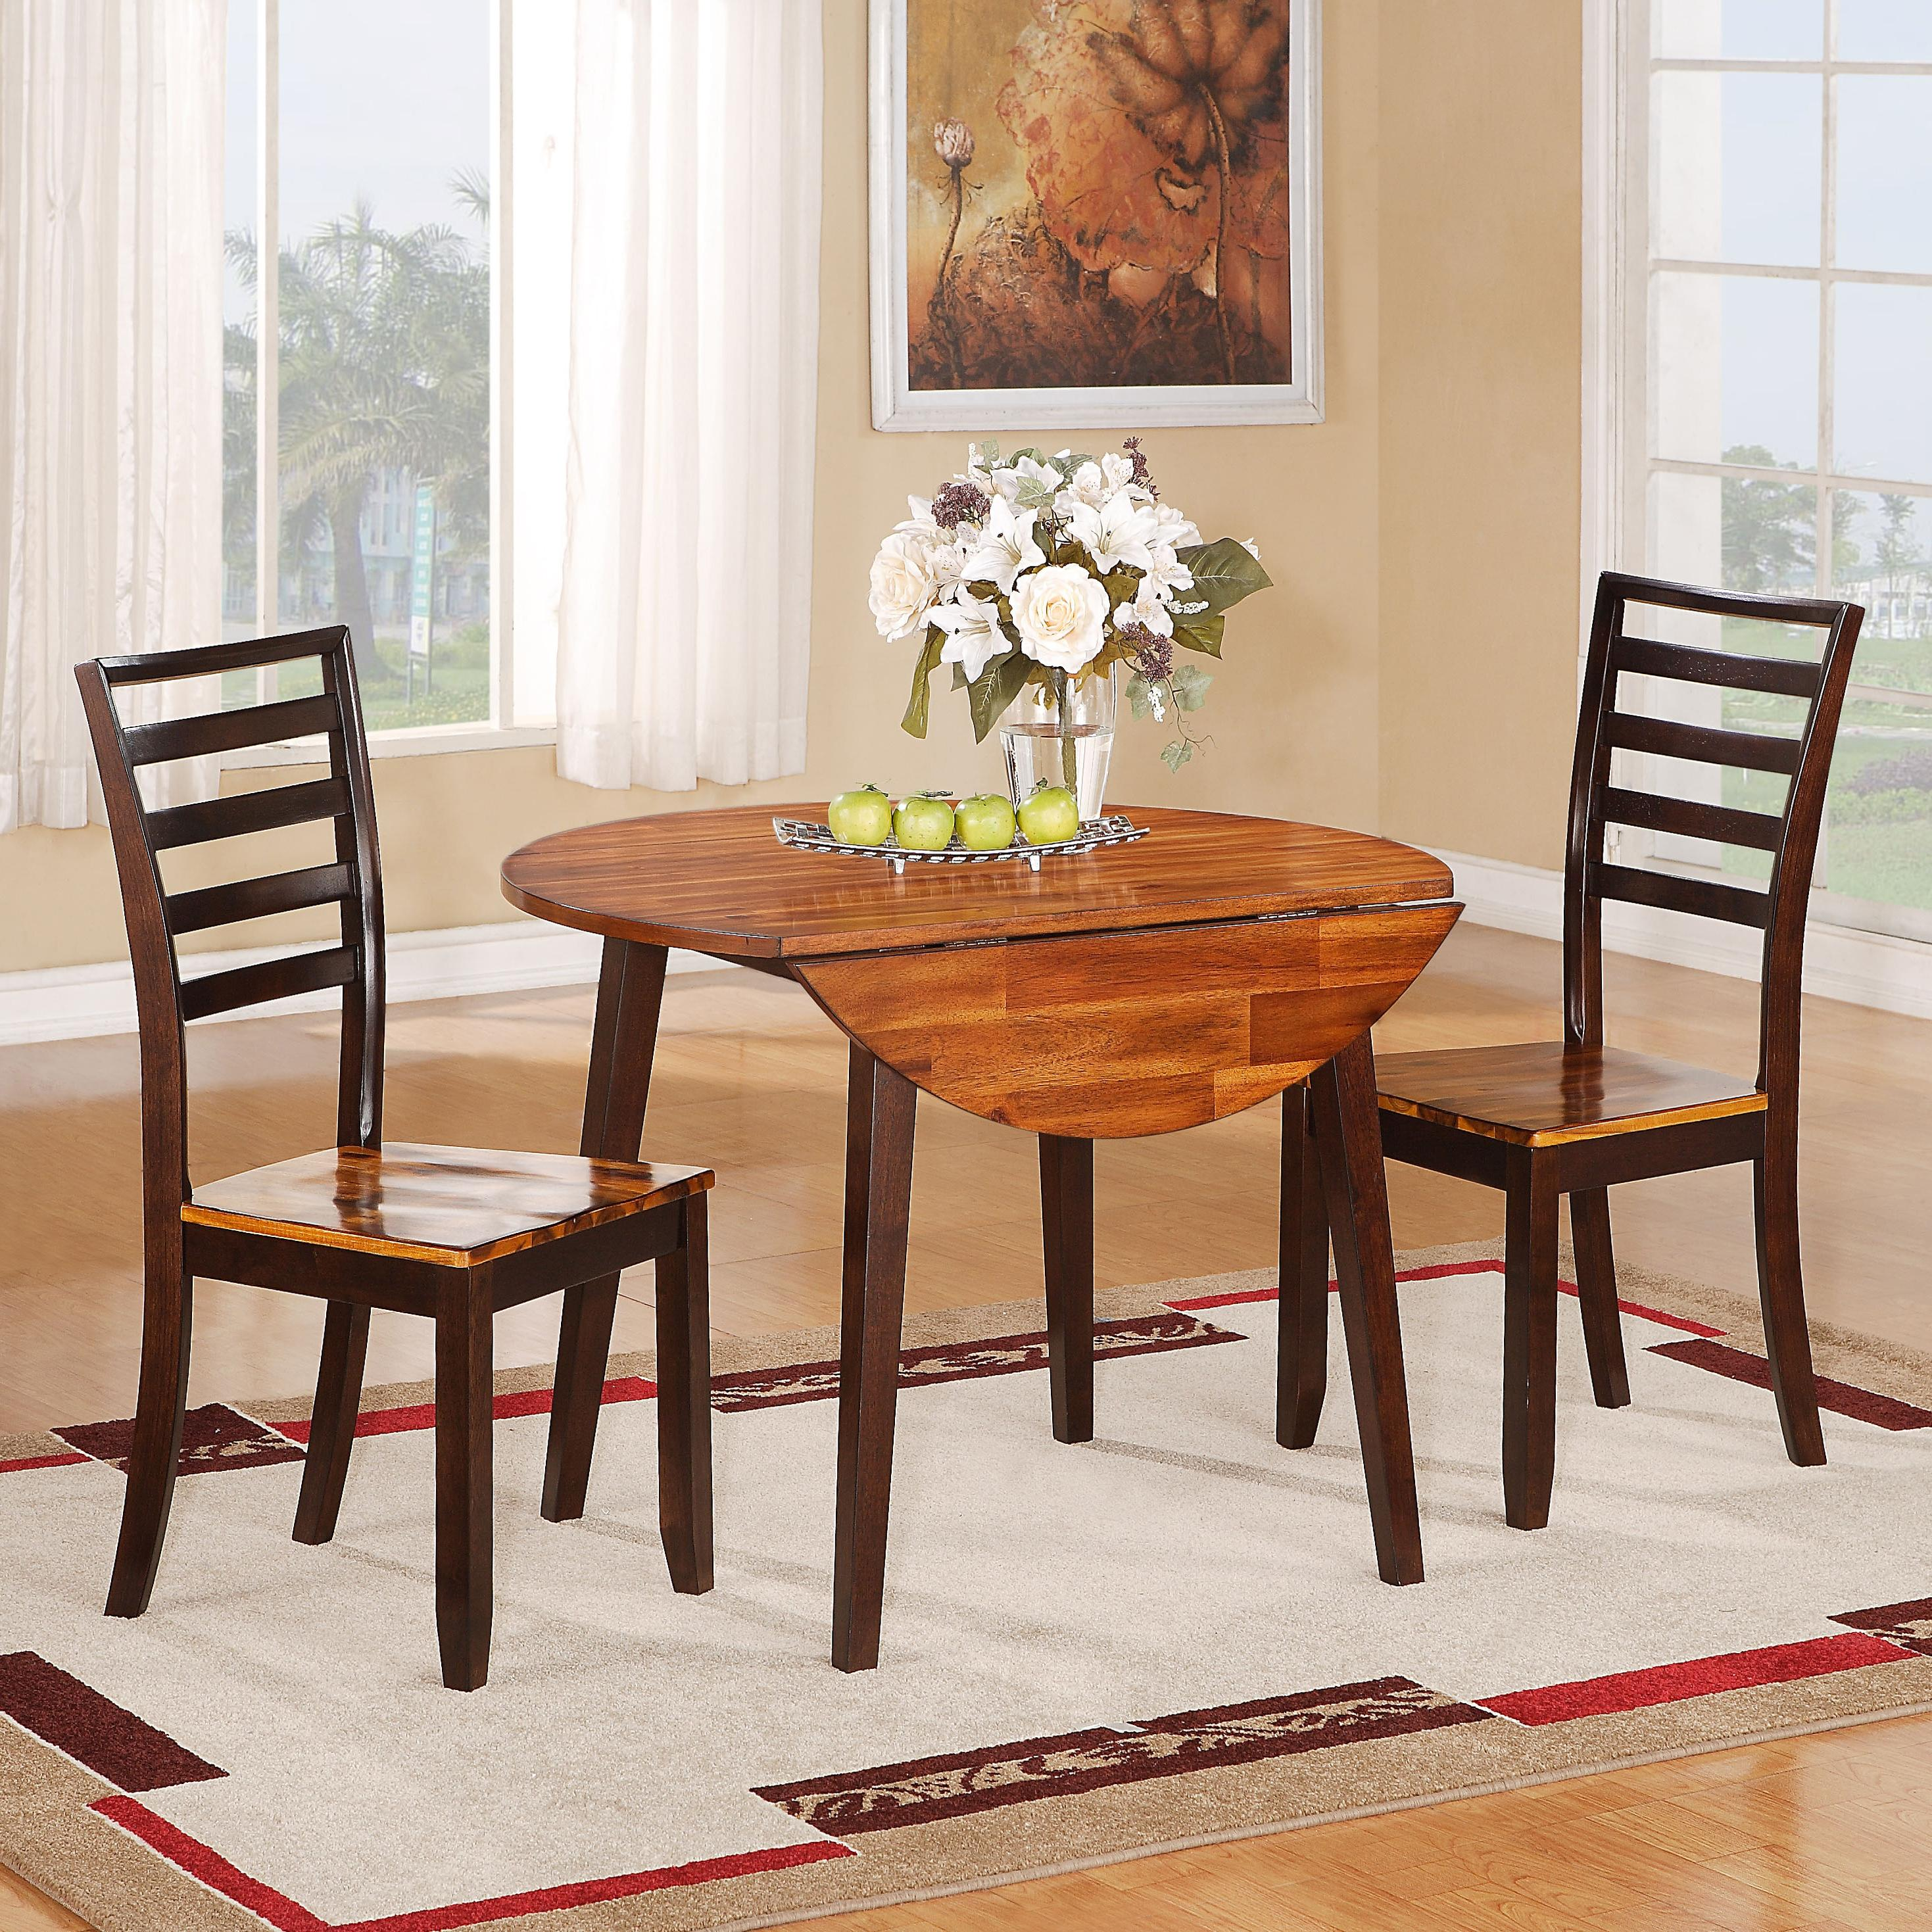 Holland House 1267 Dining 3 Piece Table and Side Chair Set - Item Number: 1267-RD4242+441-S